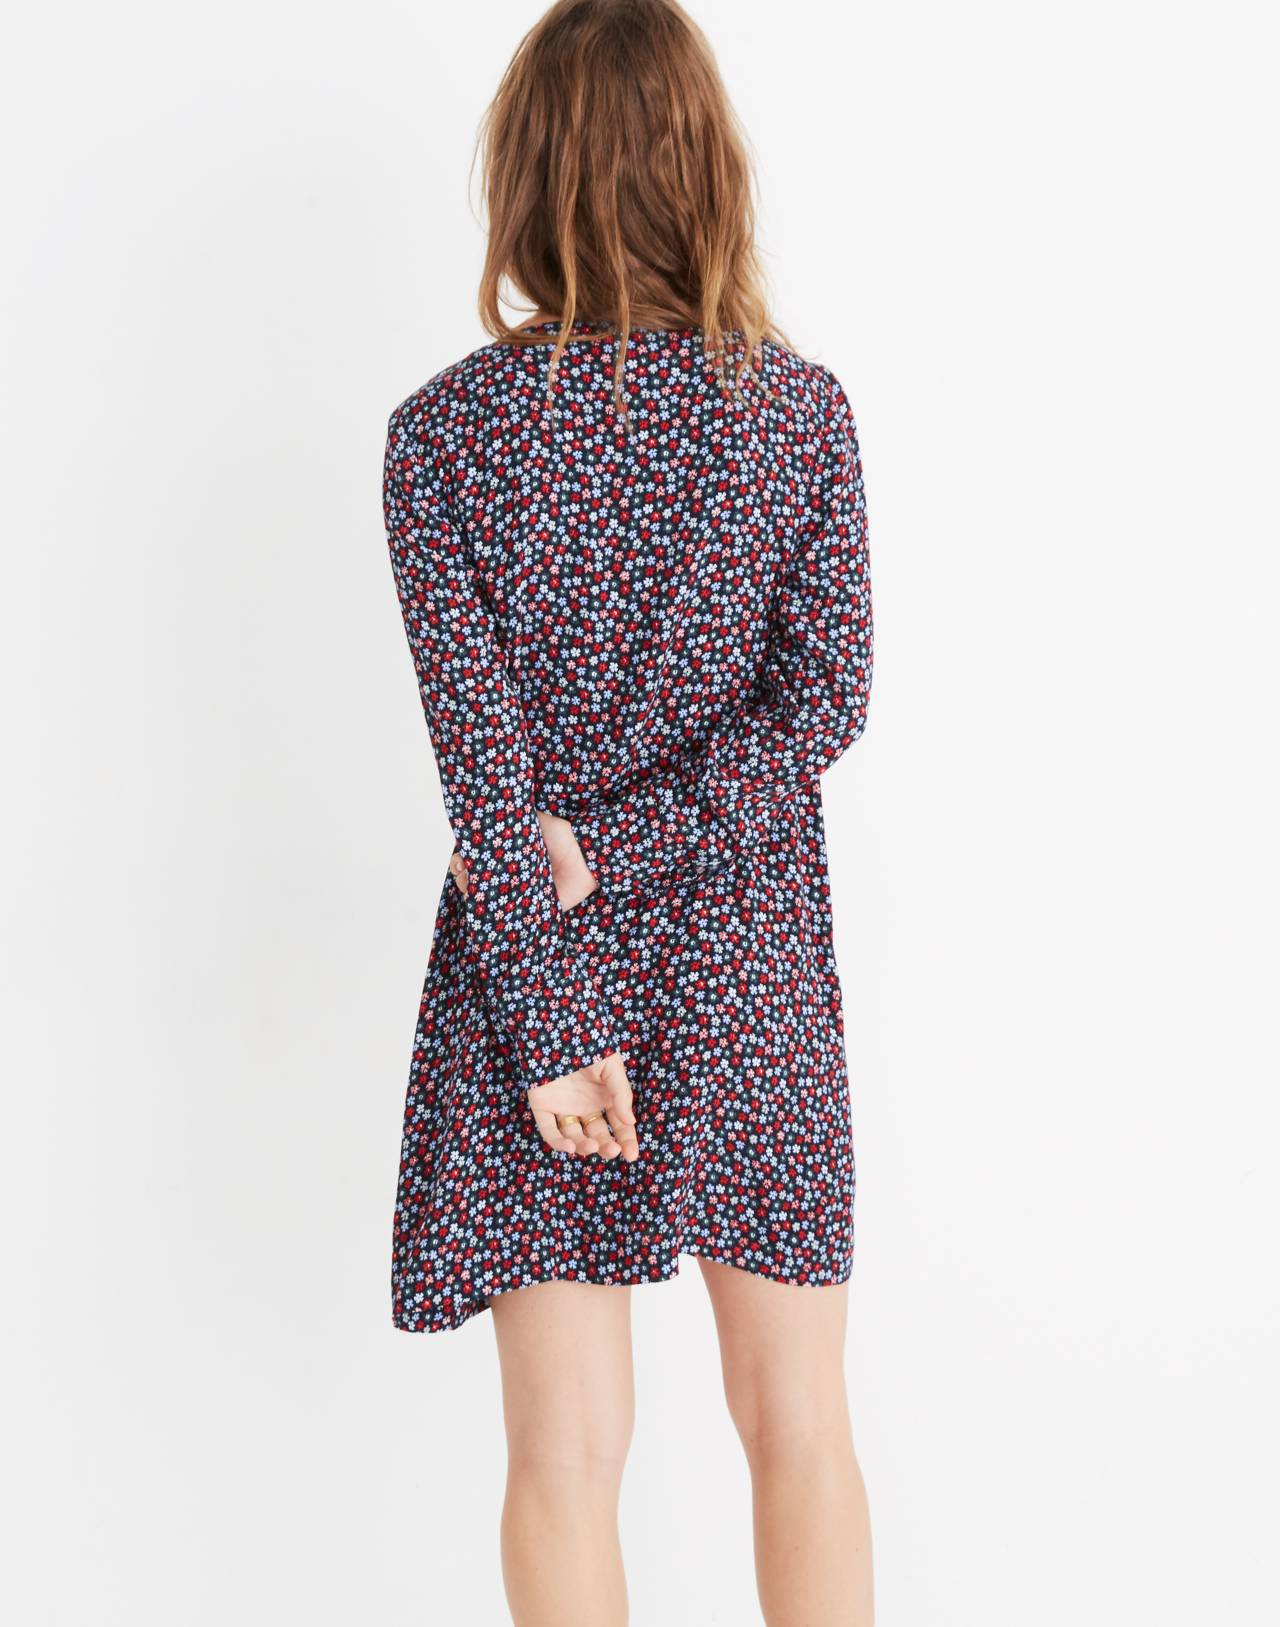 Button-Front Mini Dress in Petite Blooms in calico deep navy image 3